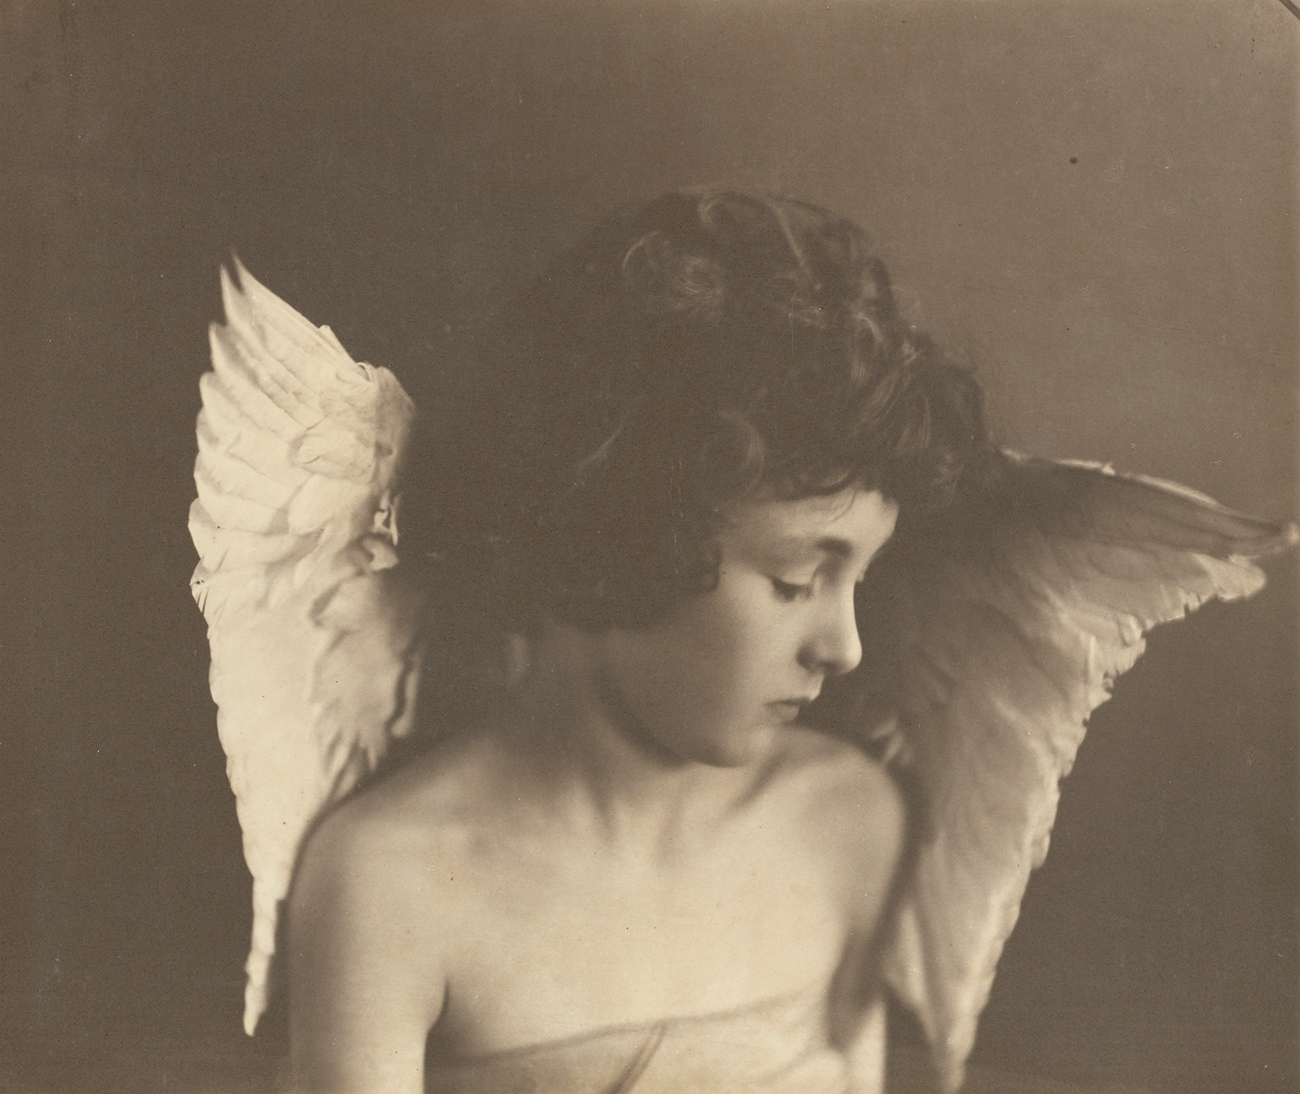 A young child with tousled hair and wings